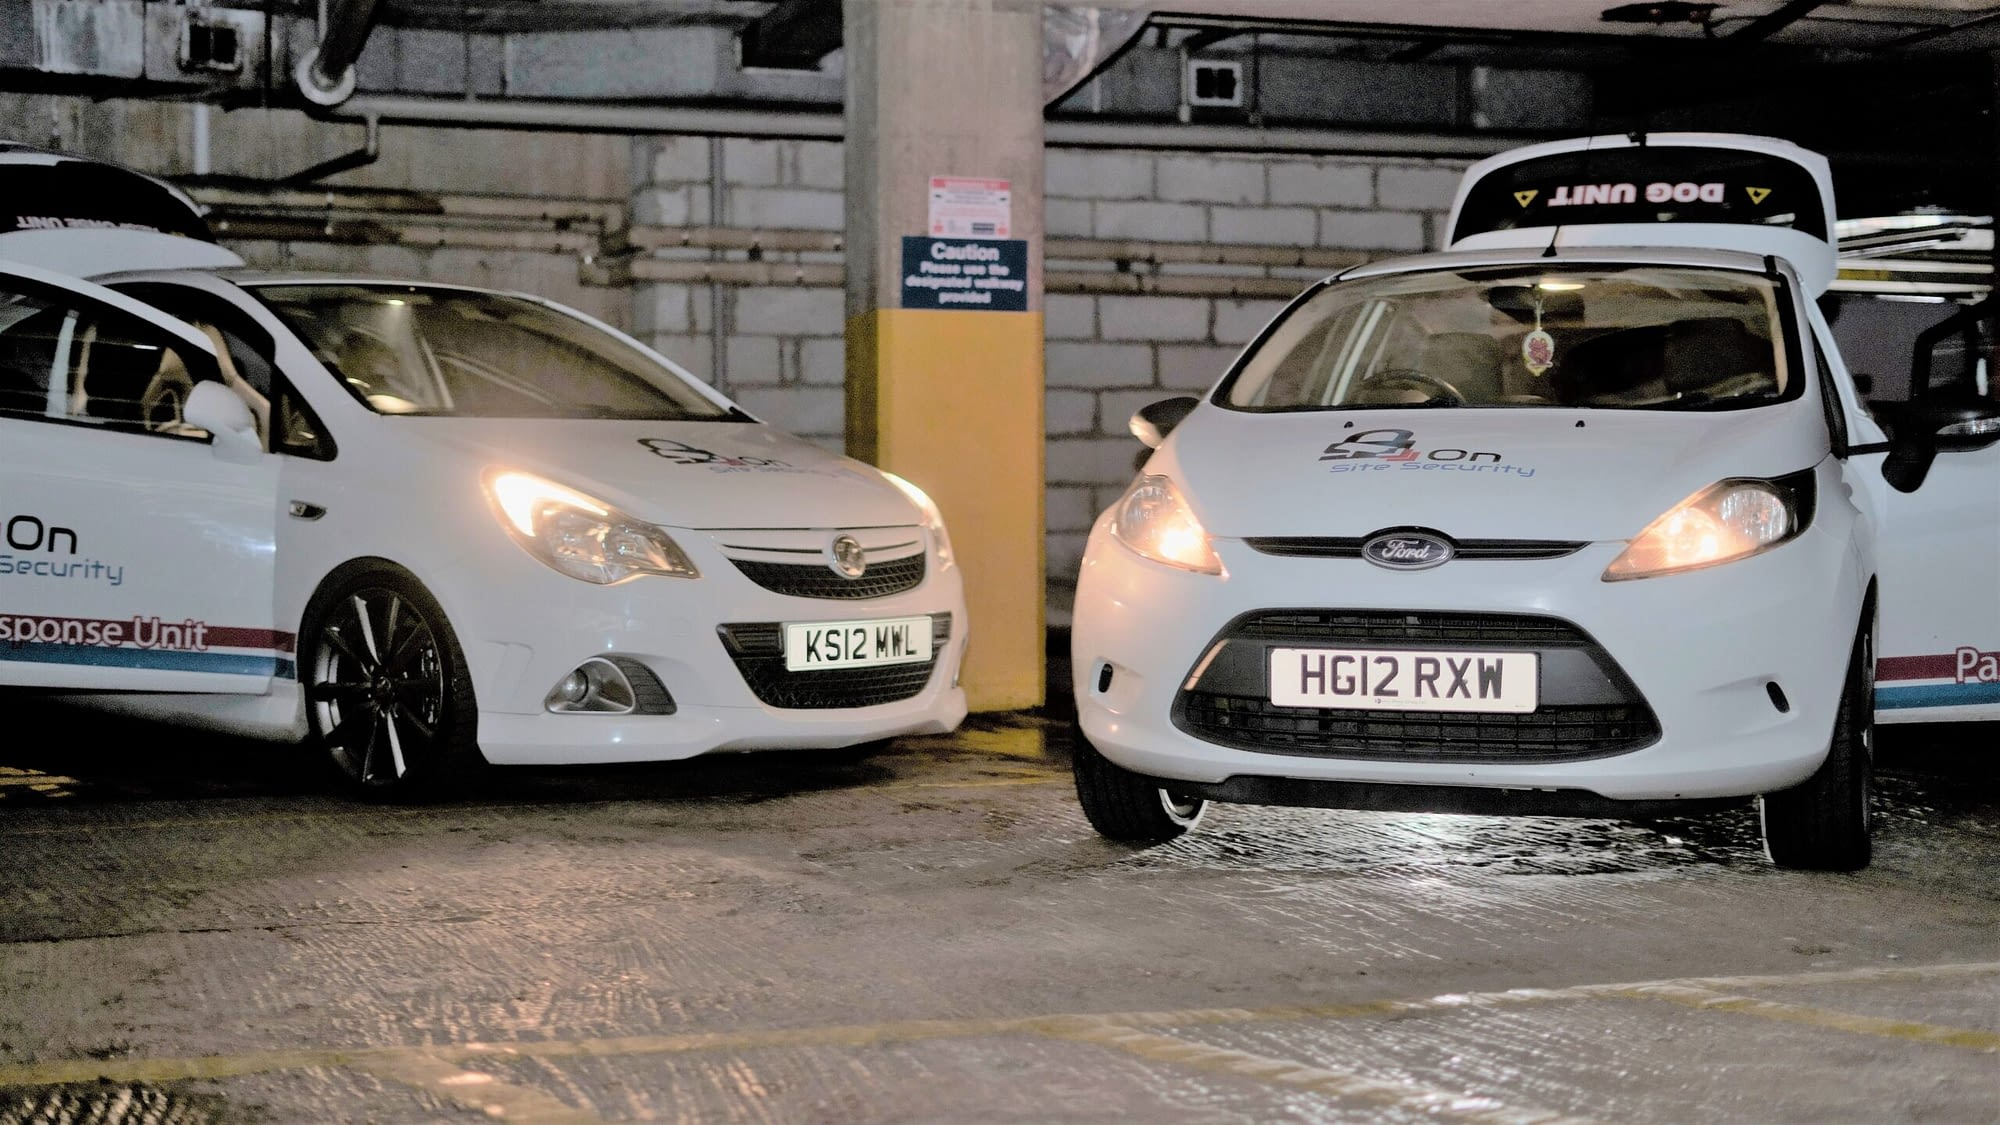 two security company cars in car park